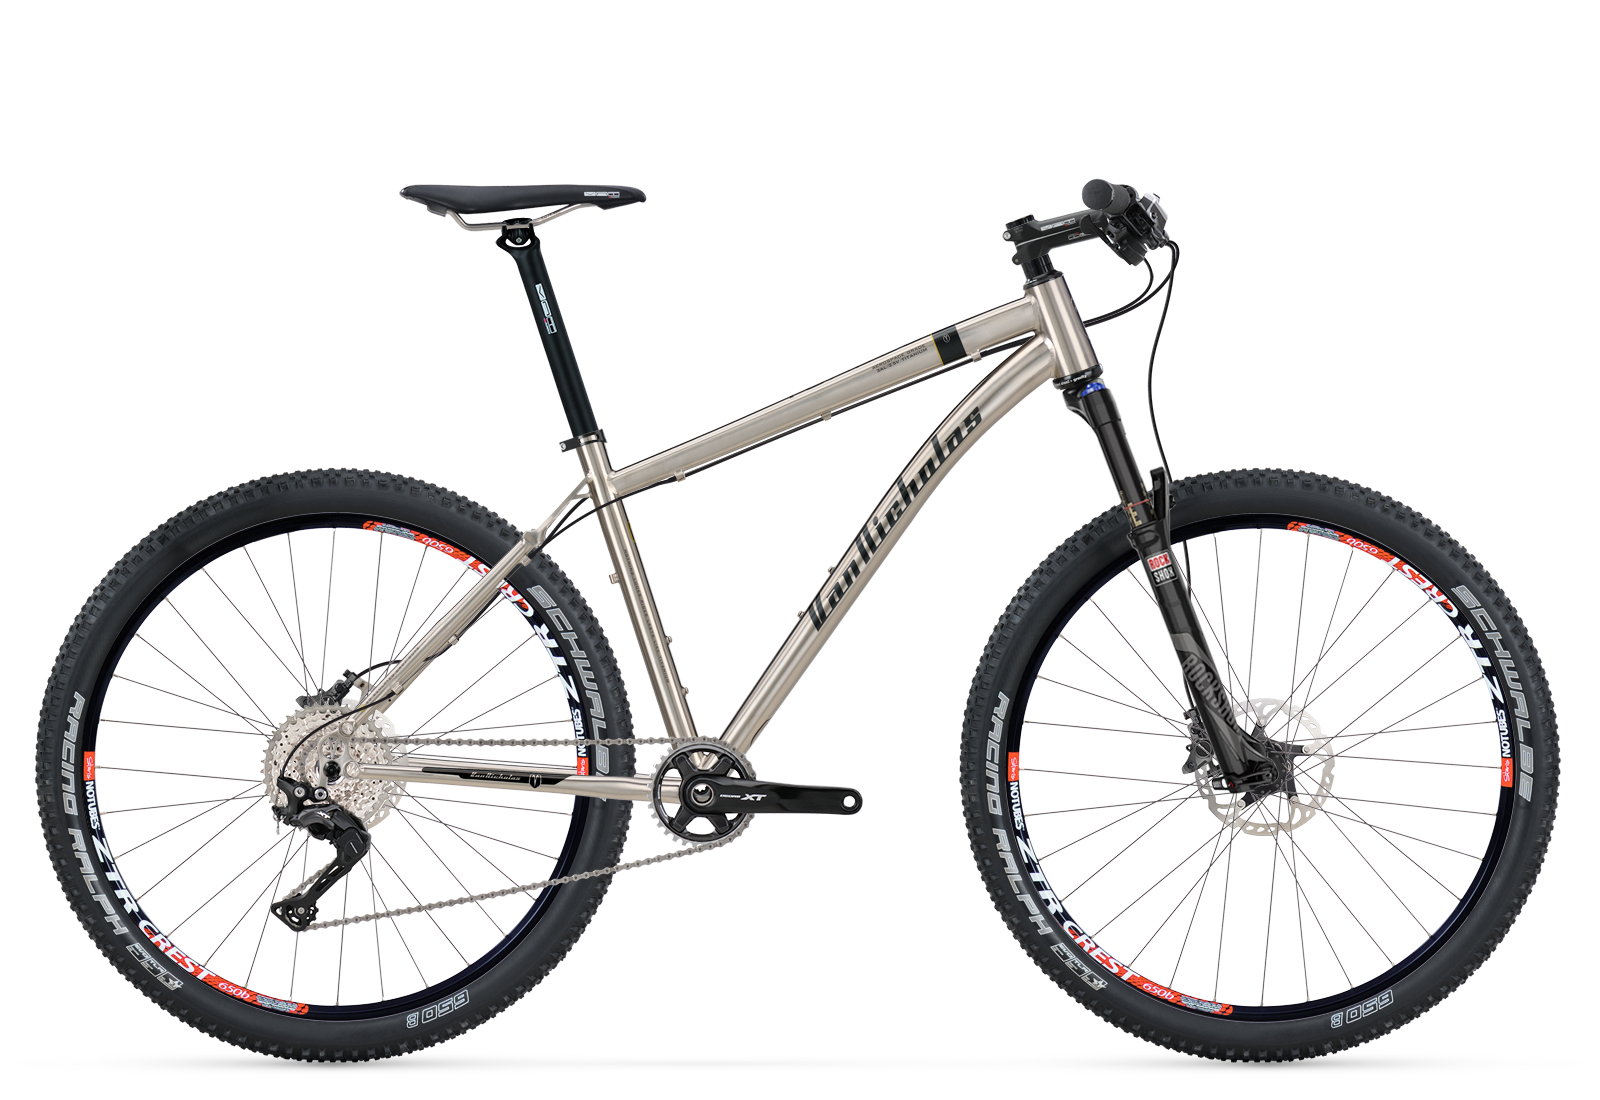 Tuareg 27.5, the titanium mountain bike | Van Nicholas